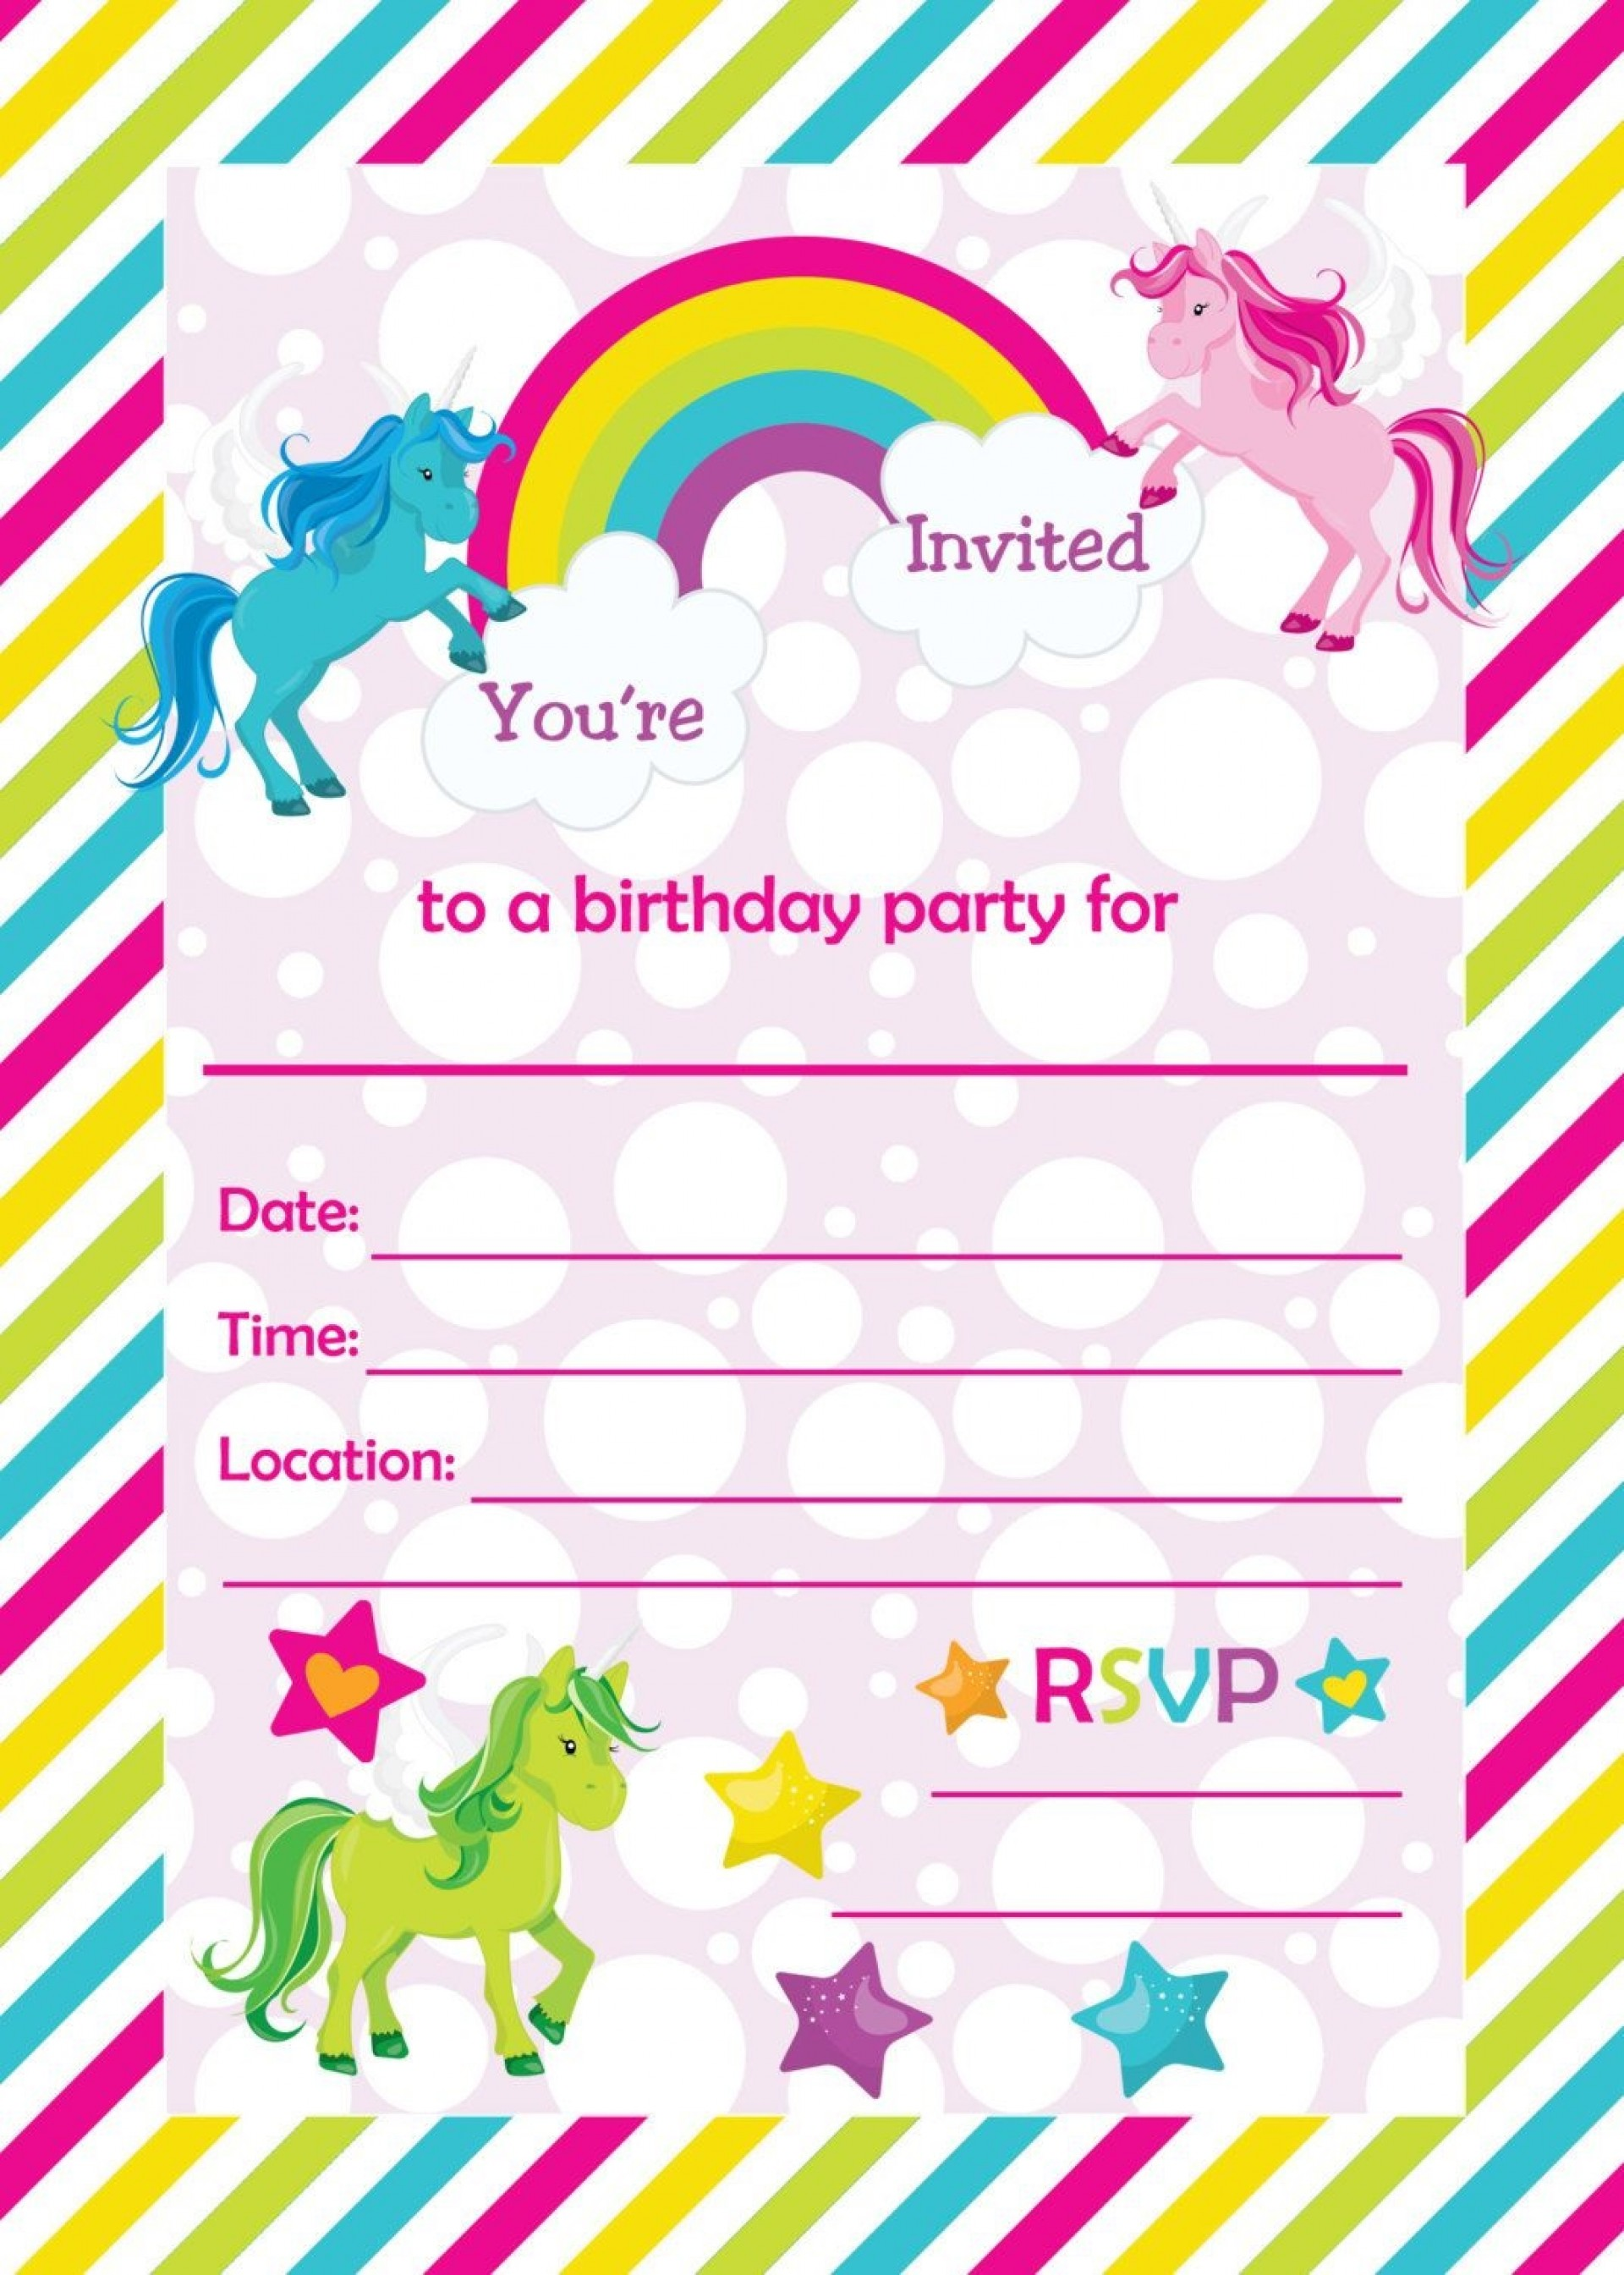 000 Remarkable Birthday Party Invitation Template High Definition  Templates Google Doc 80th Free Download Online1920